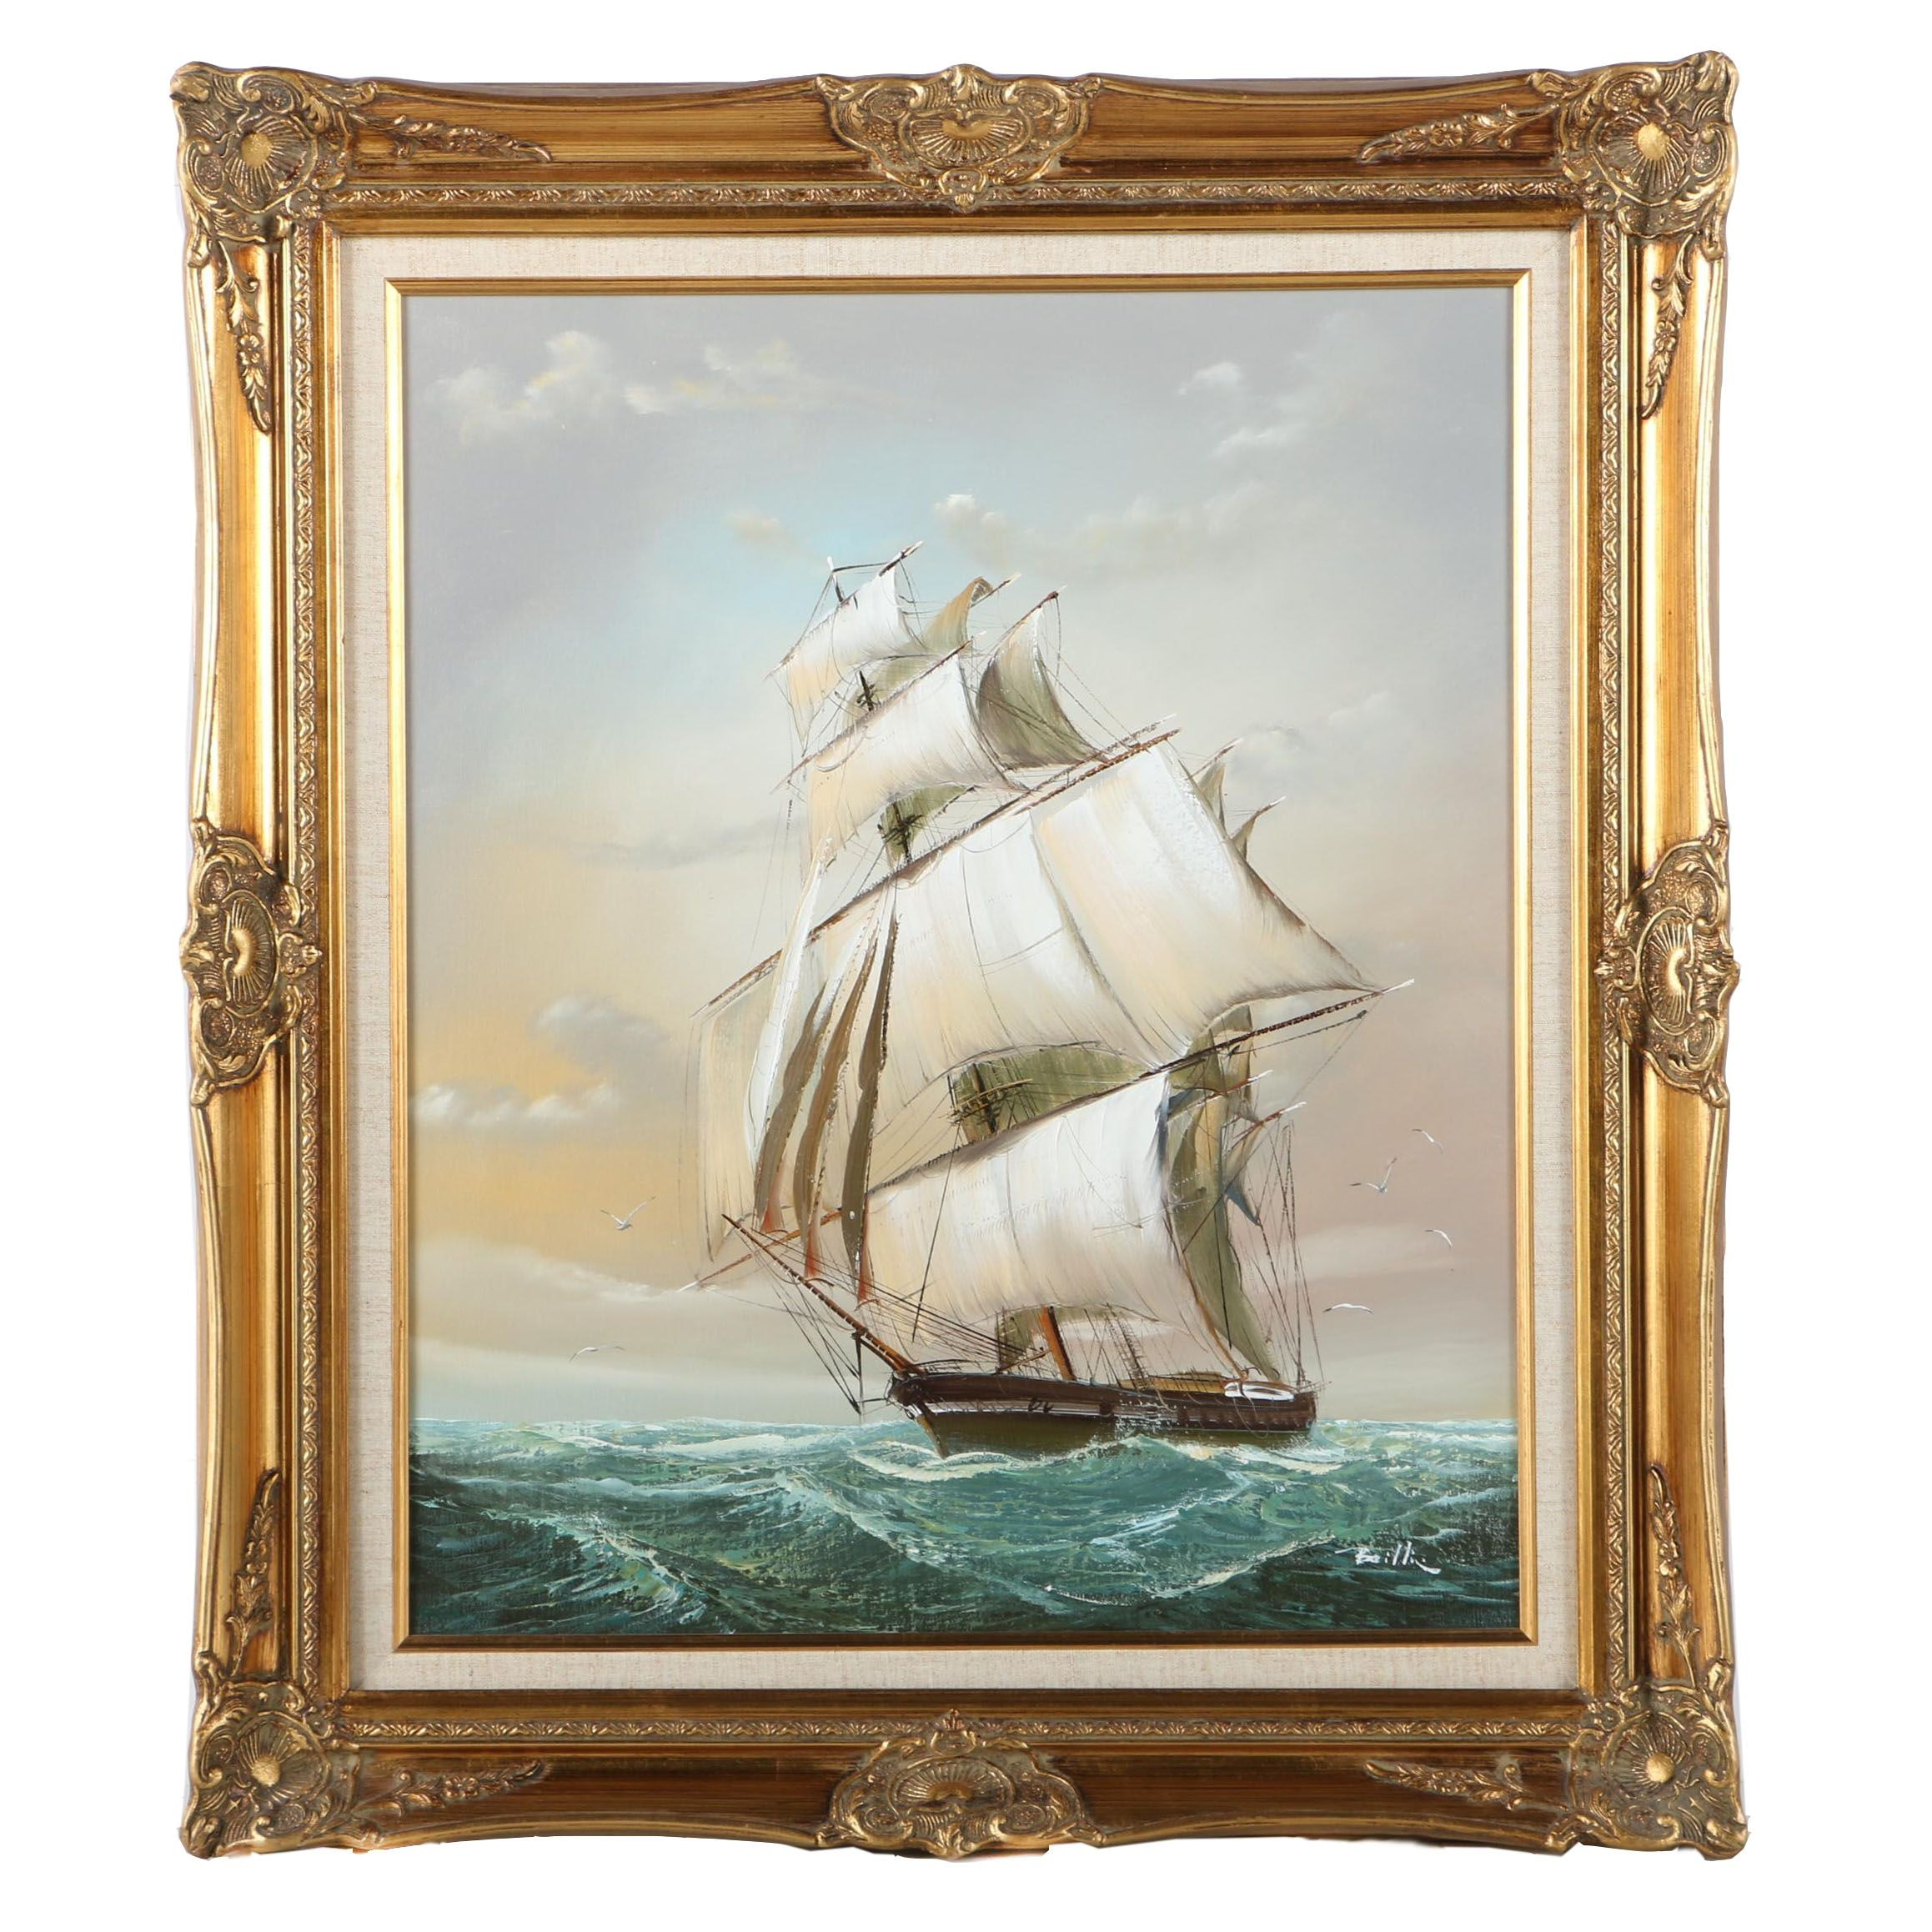 Oil Painting on Canvas of a Ship at Sea